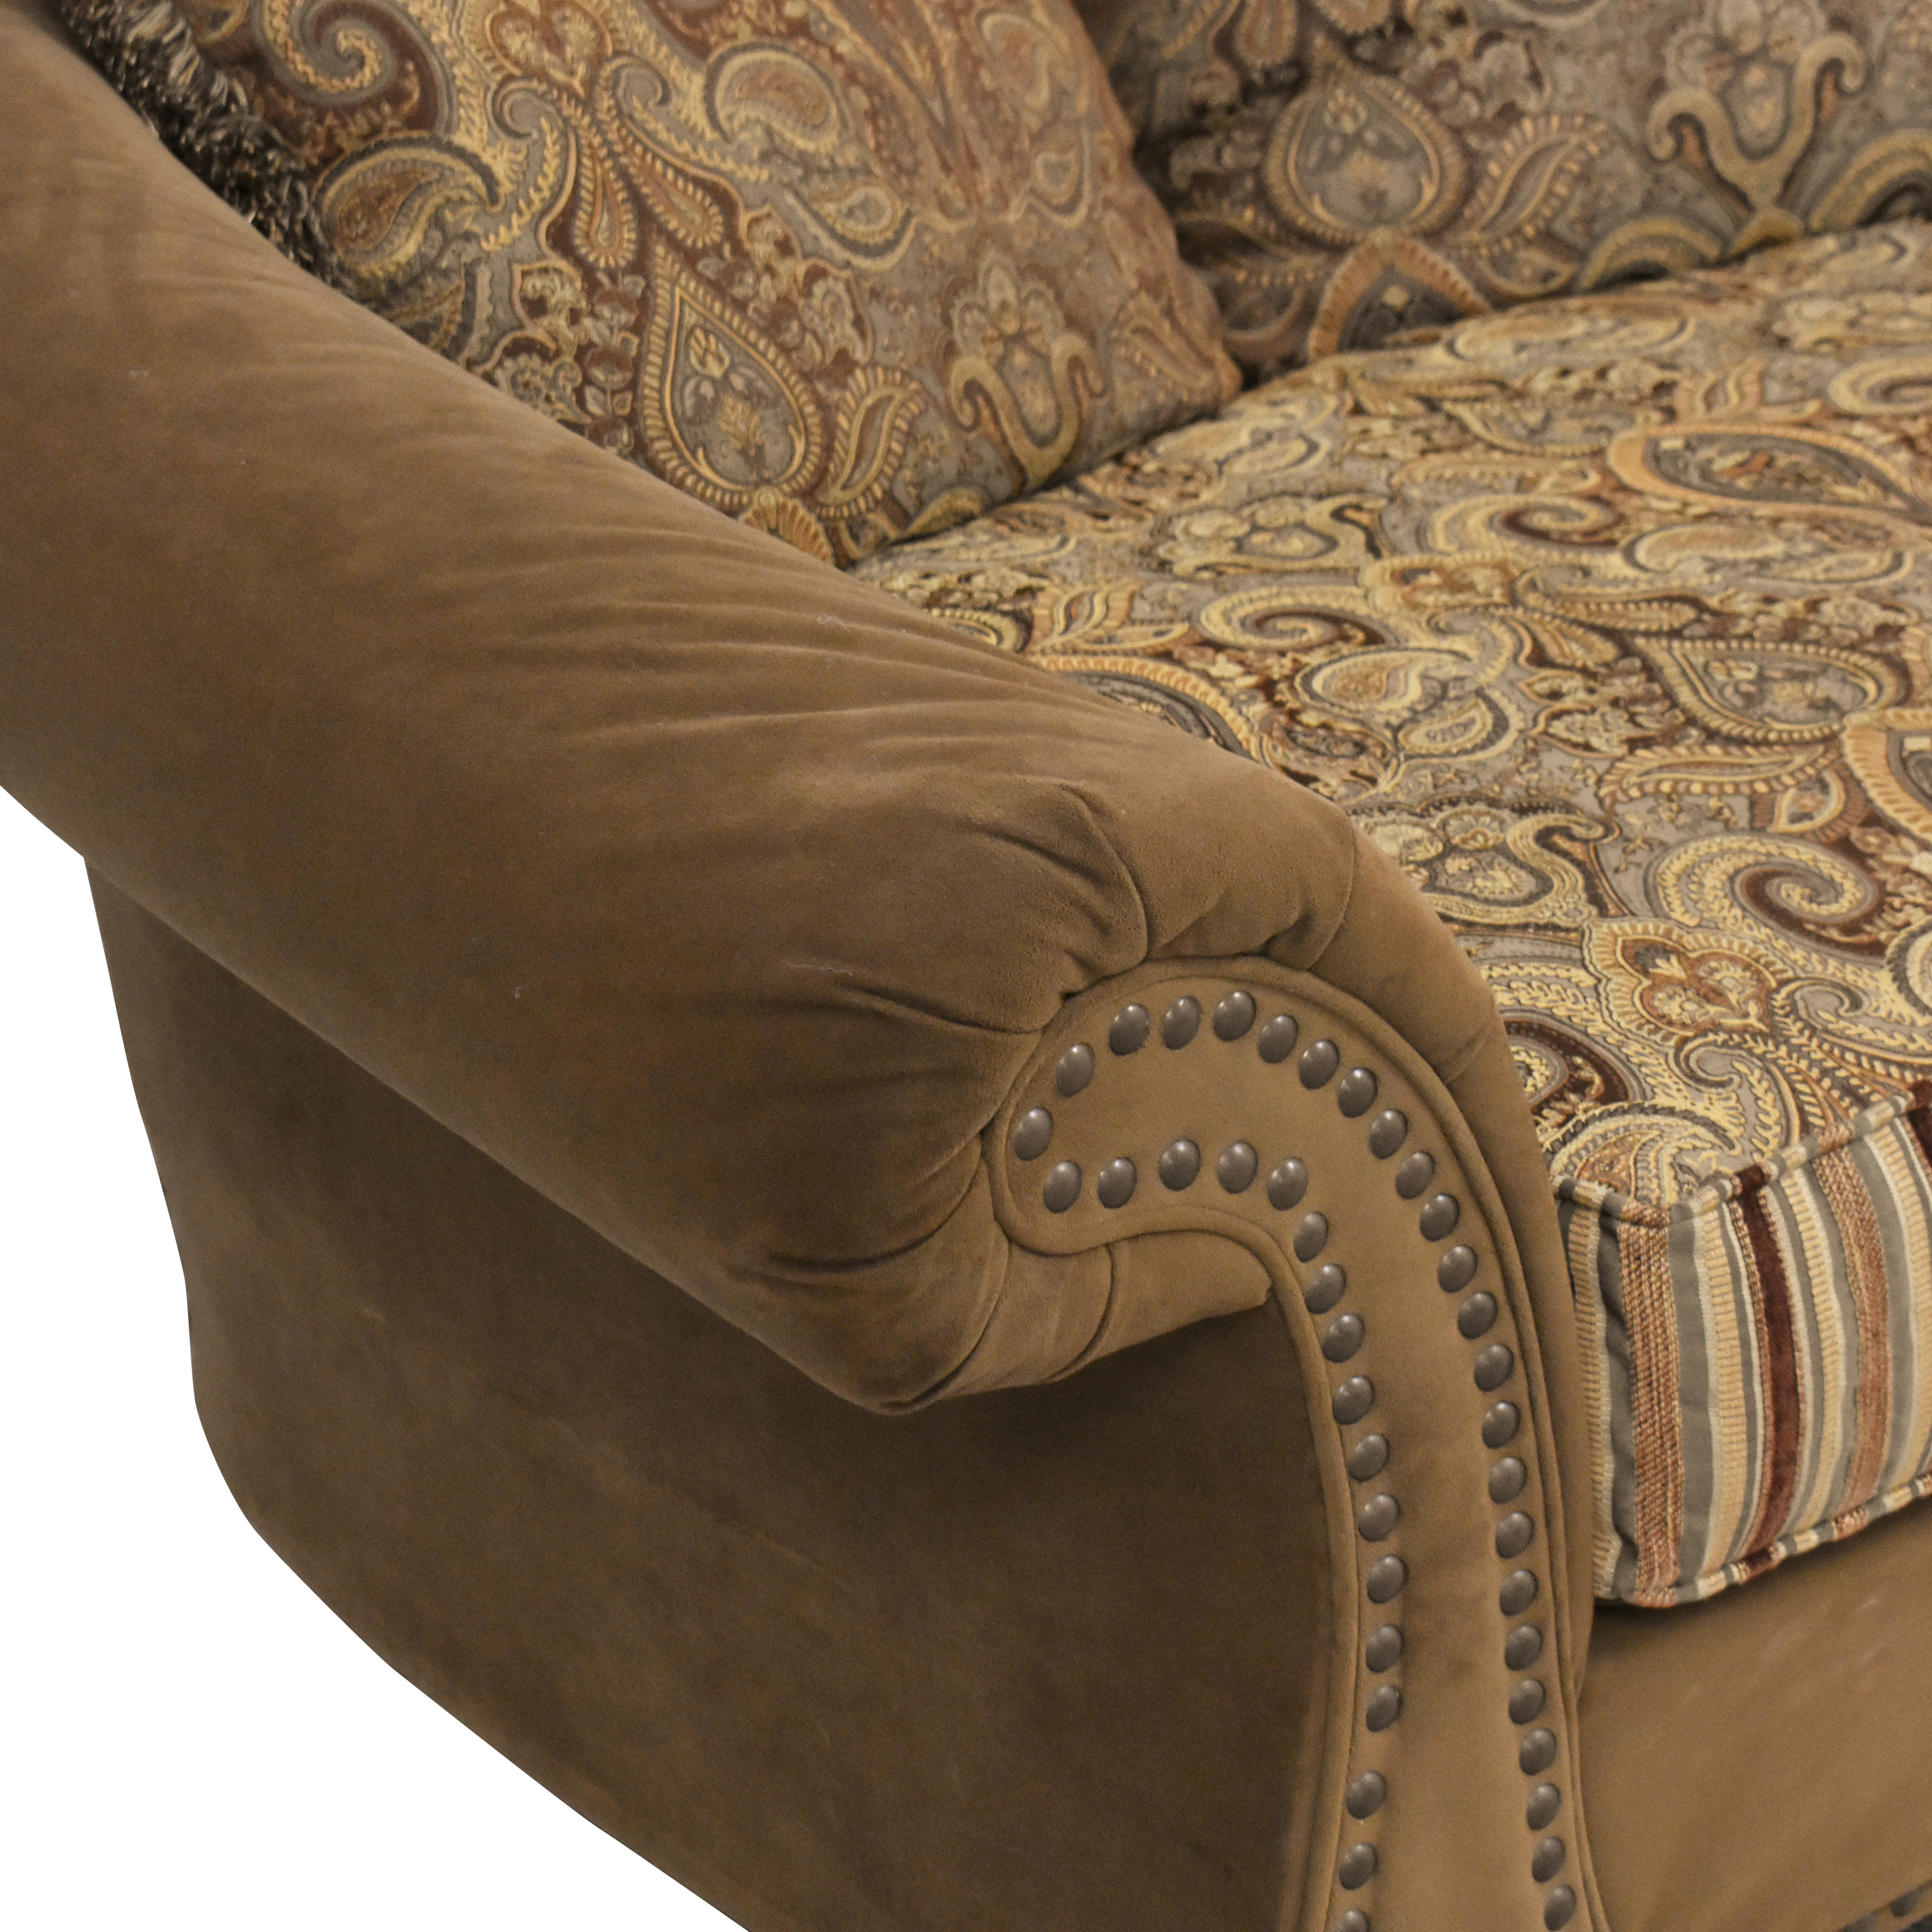 Raymour & Flanigan Raymour & Flanigan Valencia Chair by Cindy Crawford Home for sale